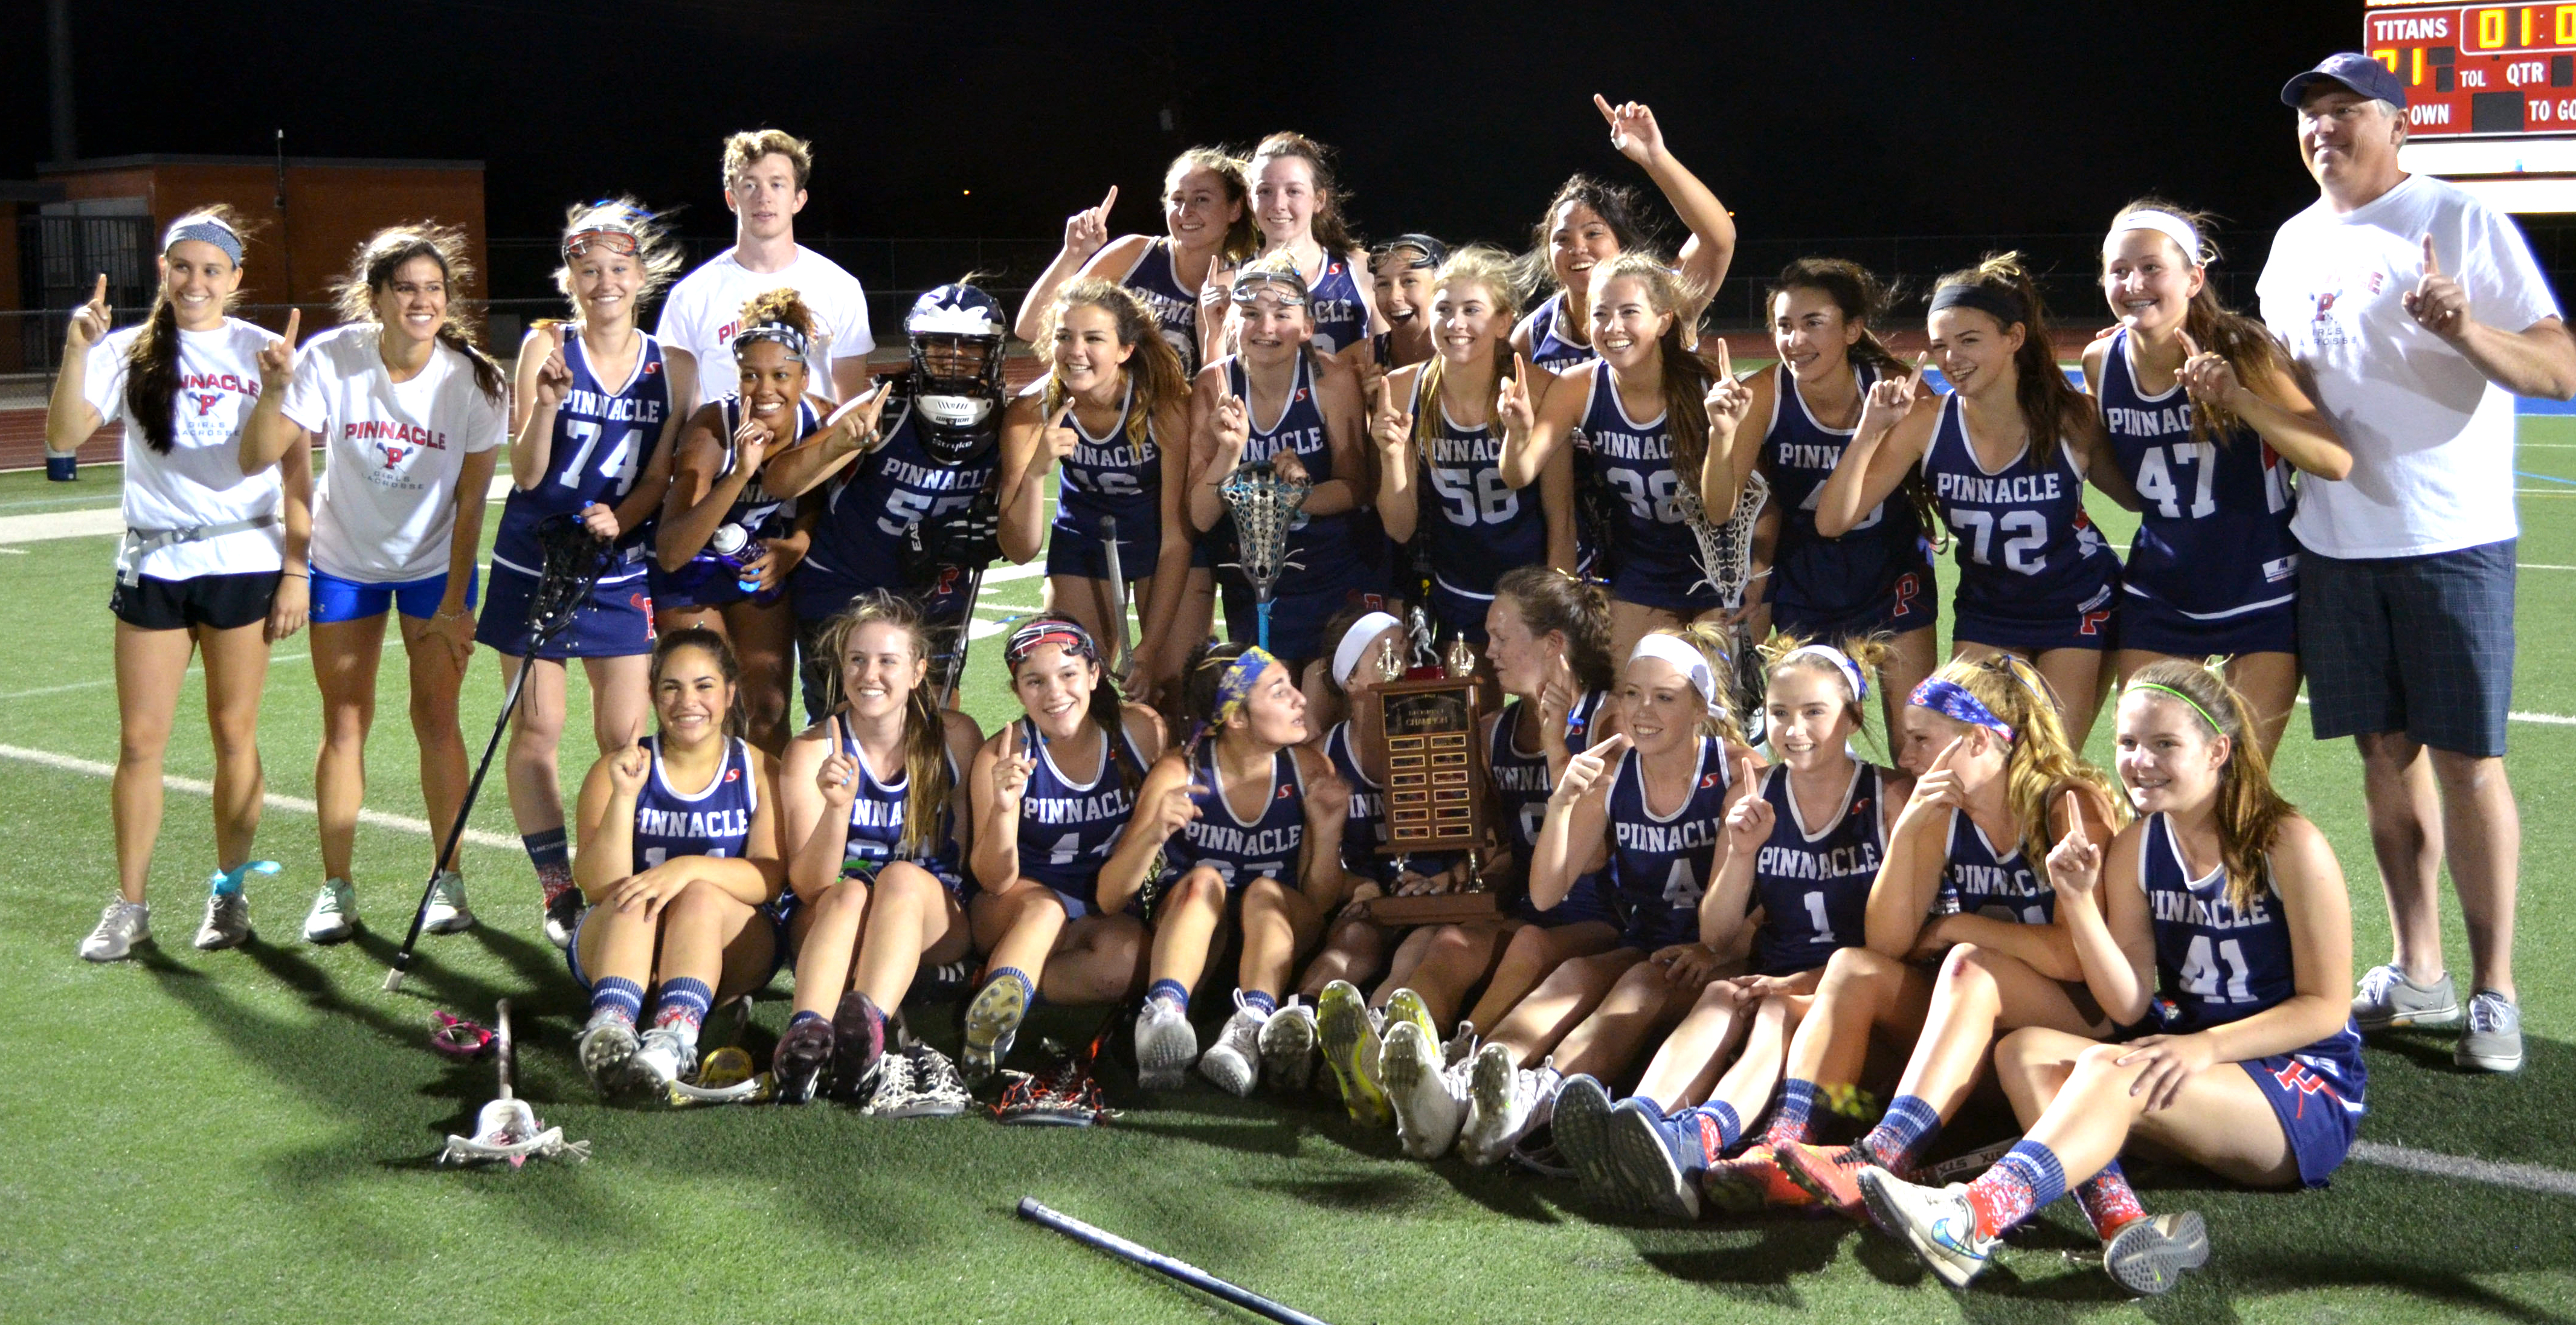 Pinnacle Lacrosse 2017 Champions